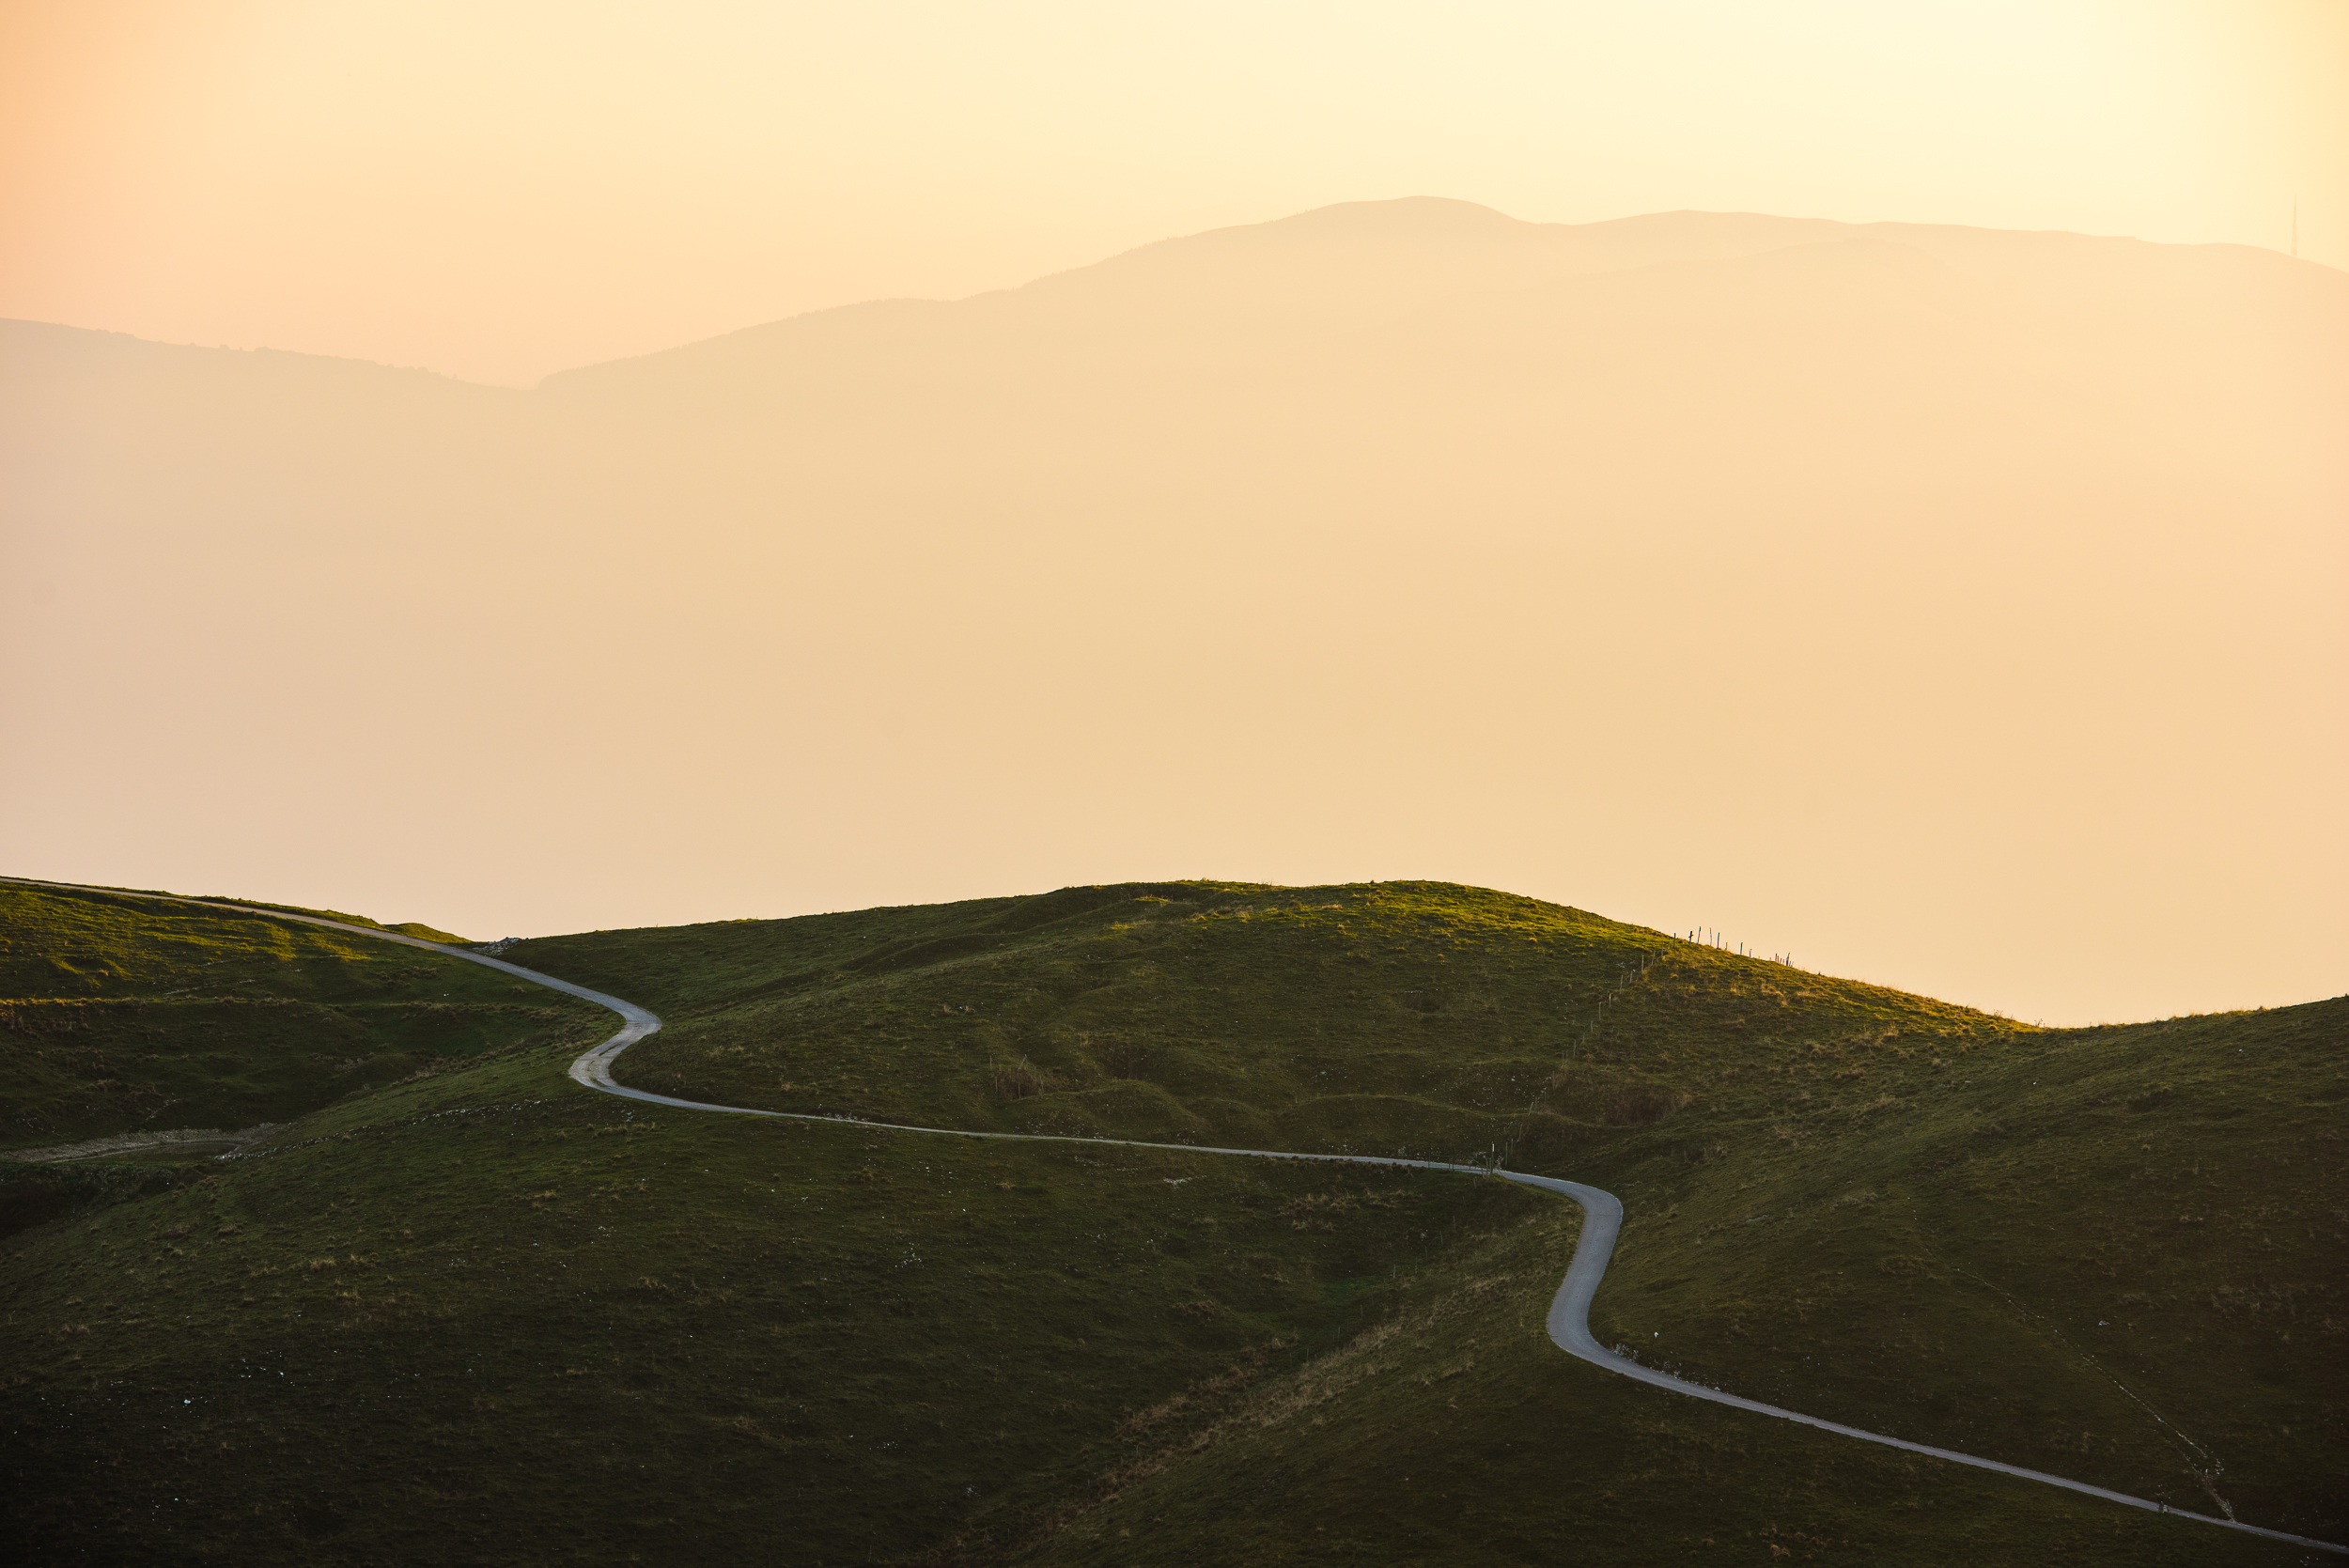 2018-10-20_Web_6066_Road around the hills at sunrise.jpg